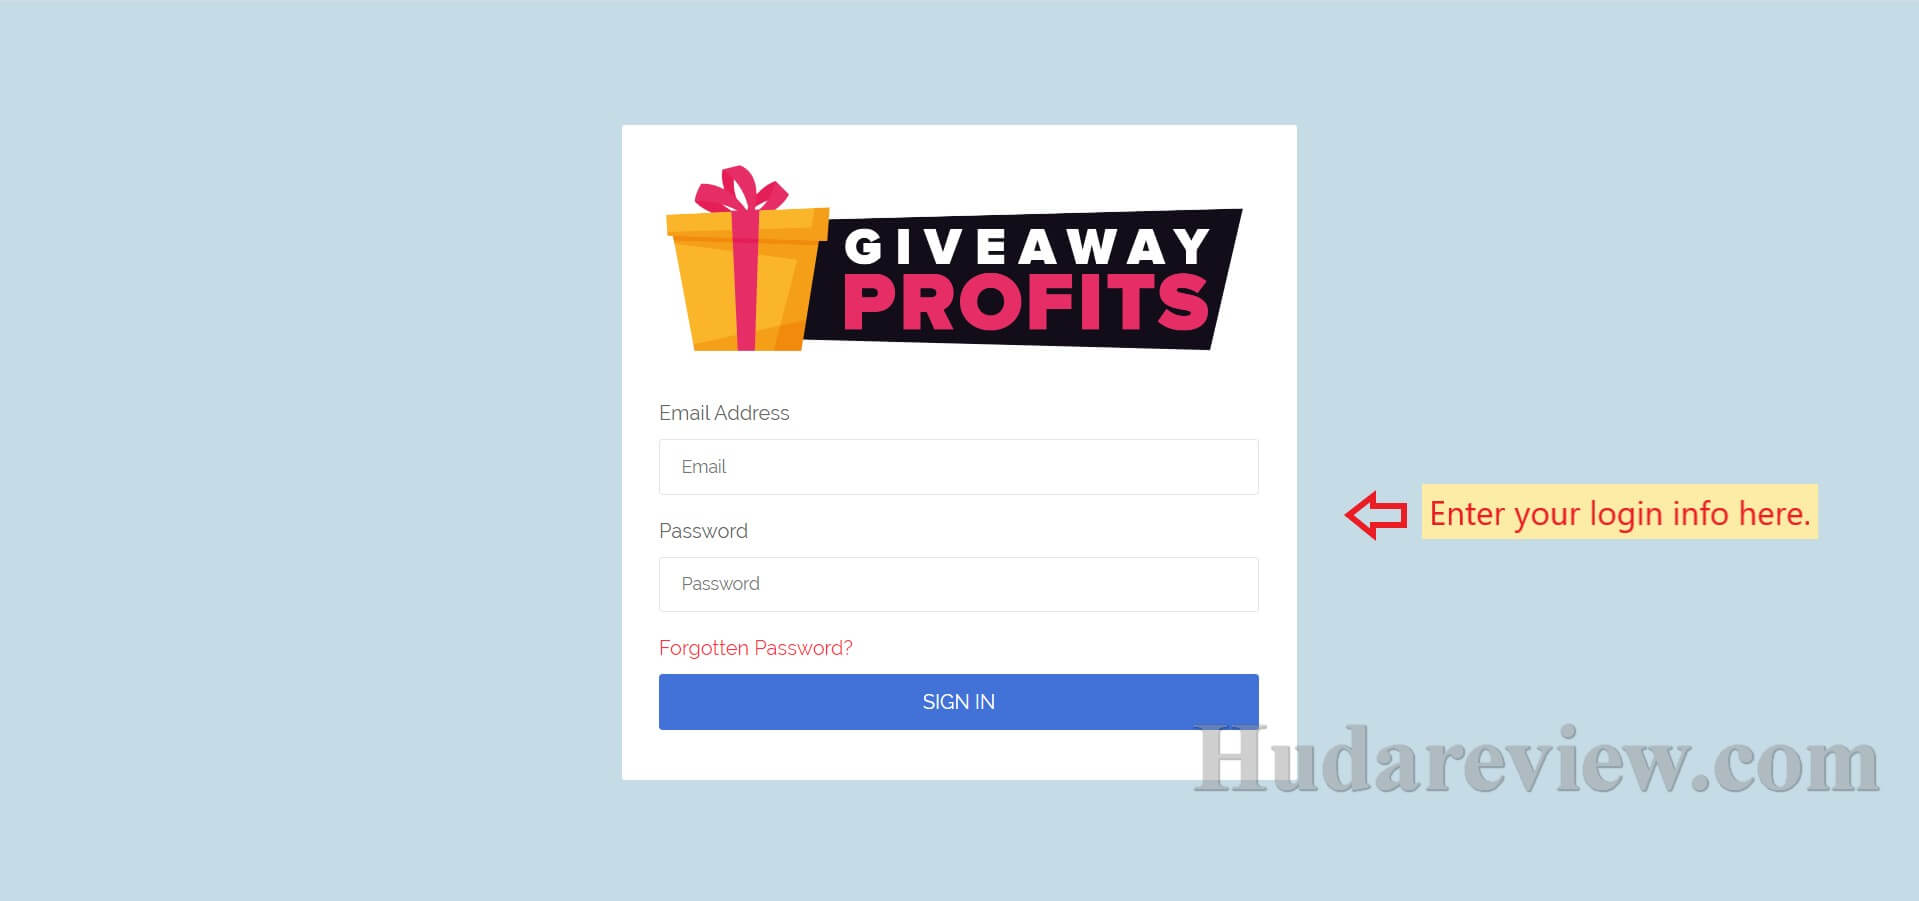 Giveaway-Profits-Review-1-1